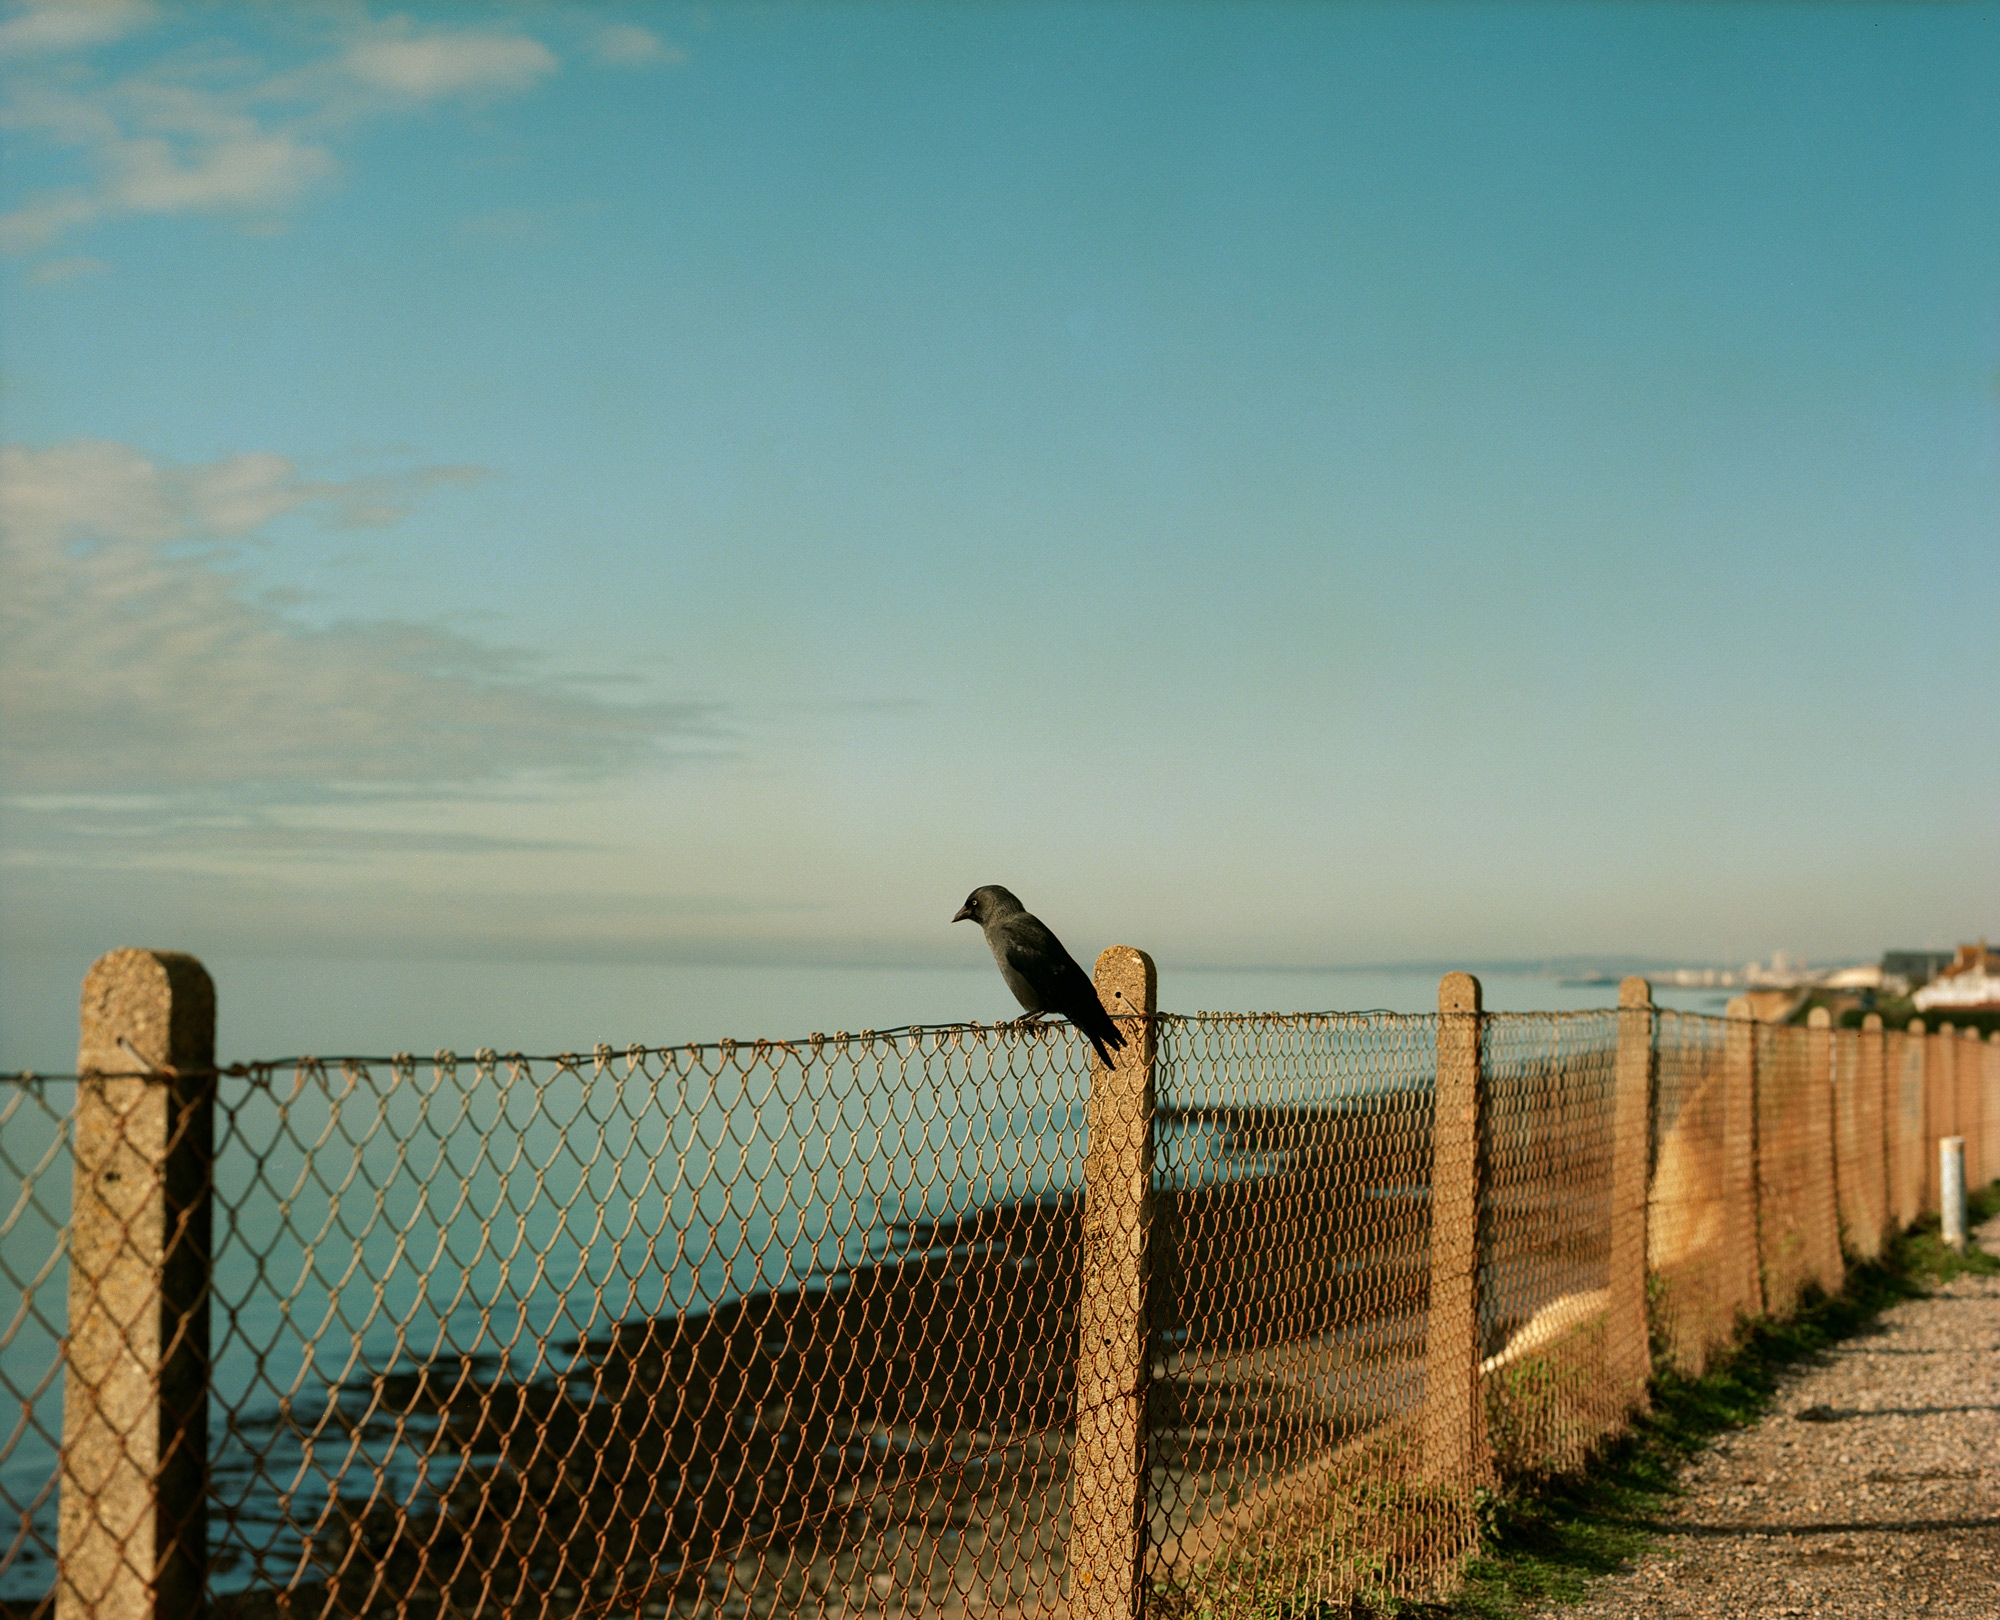 The Crow On The Fence, Observations Series, Photography By Ioannis Koussertari